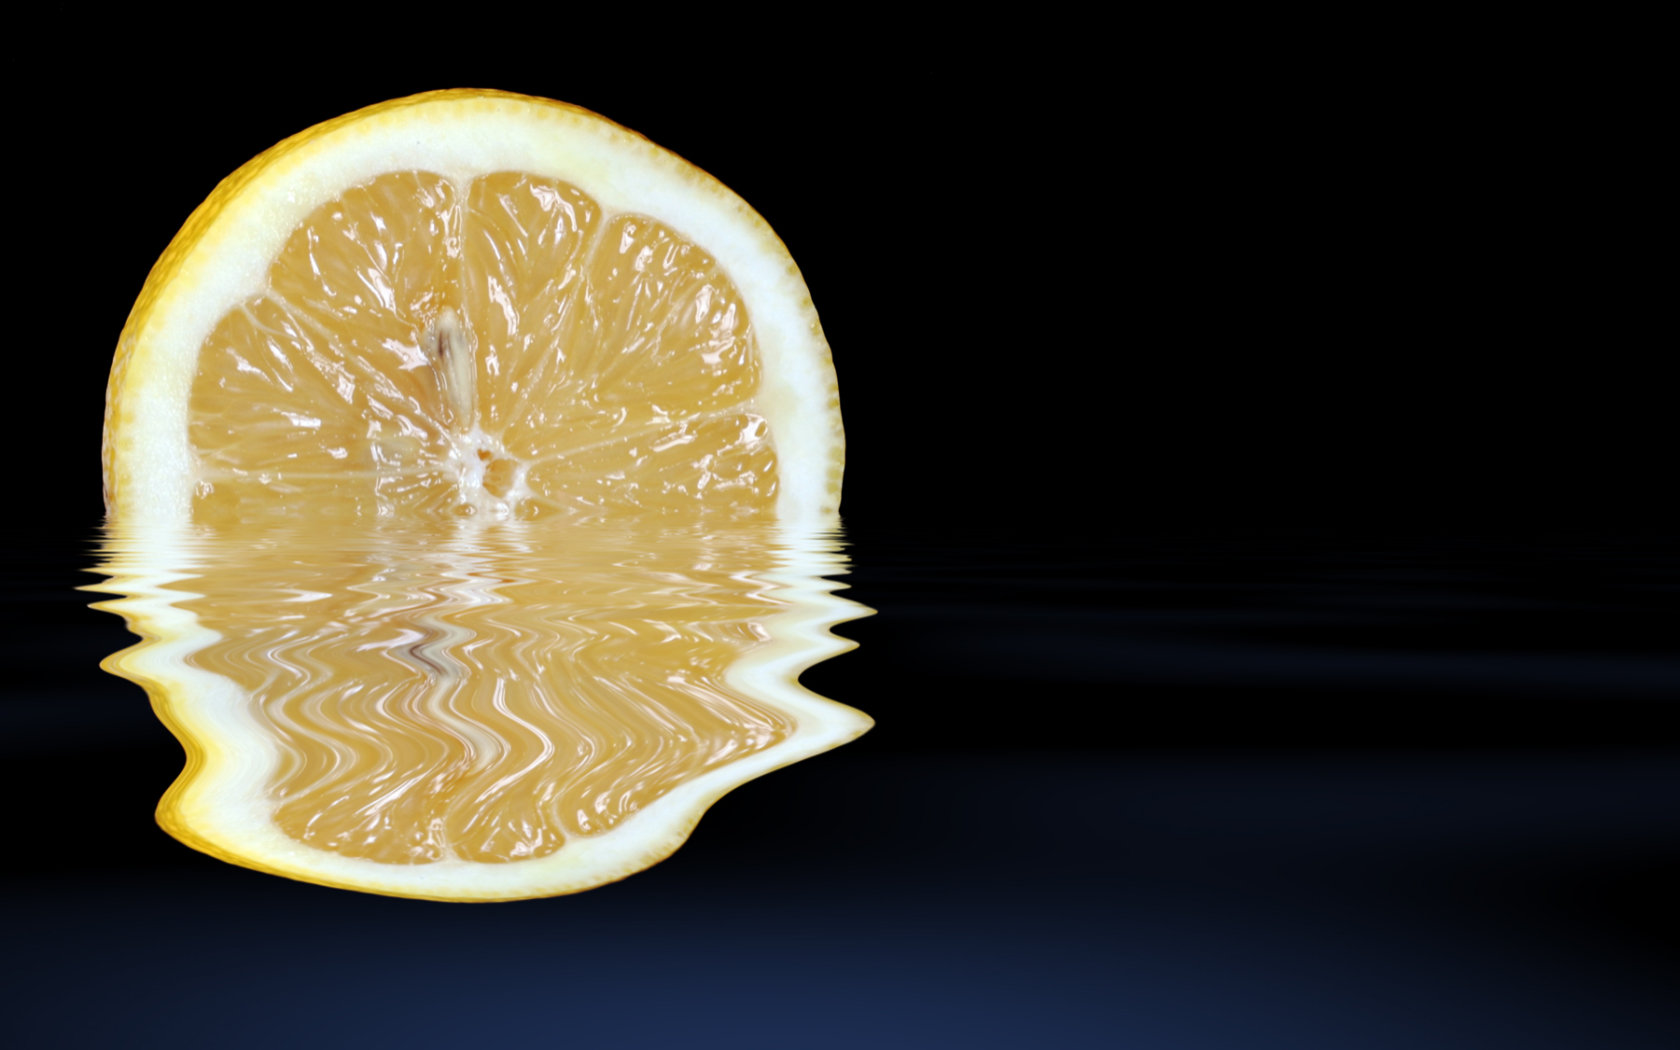 Free download Lemon background ID:10322 hd 1680x1050 for computer